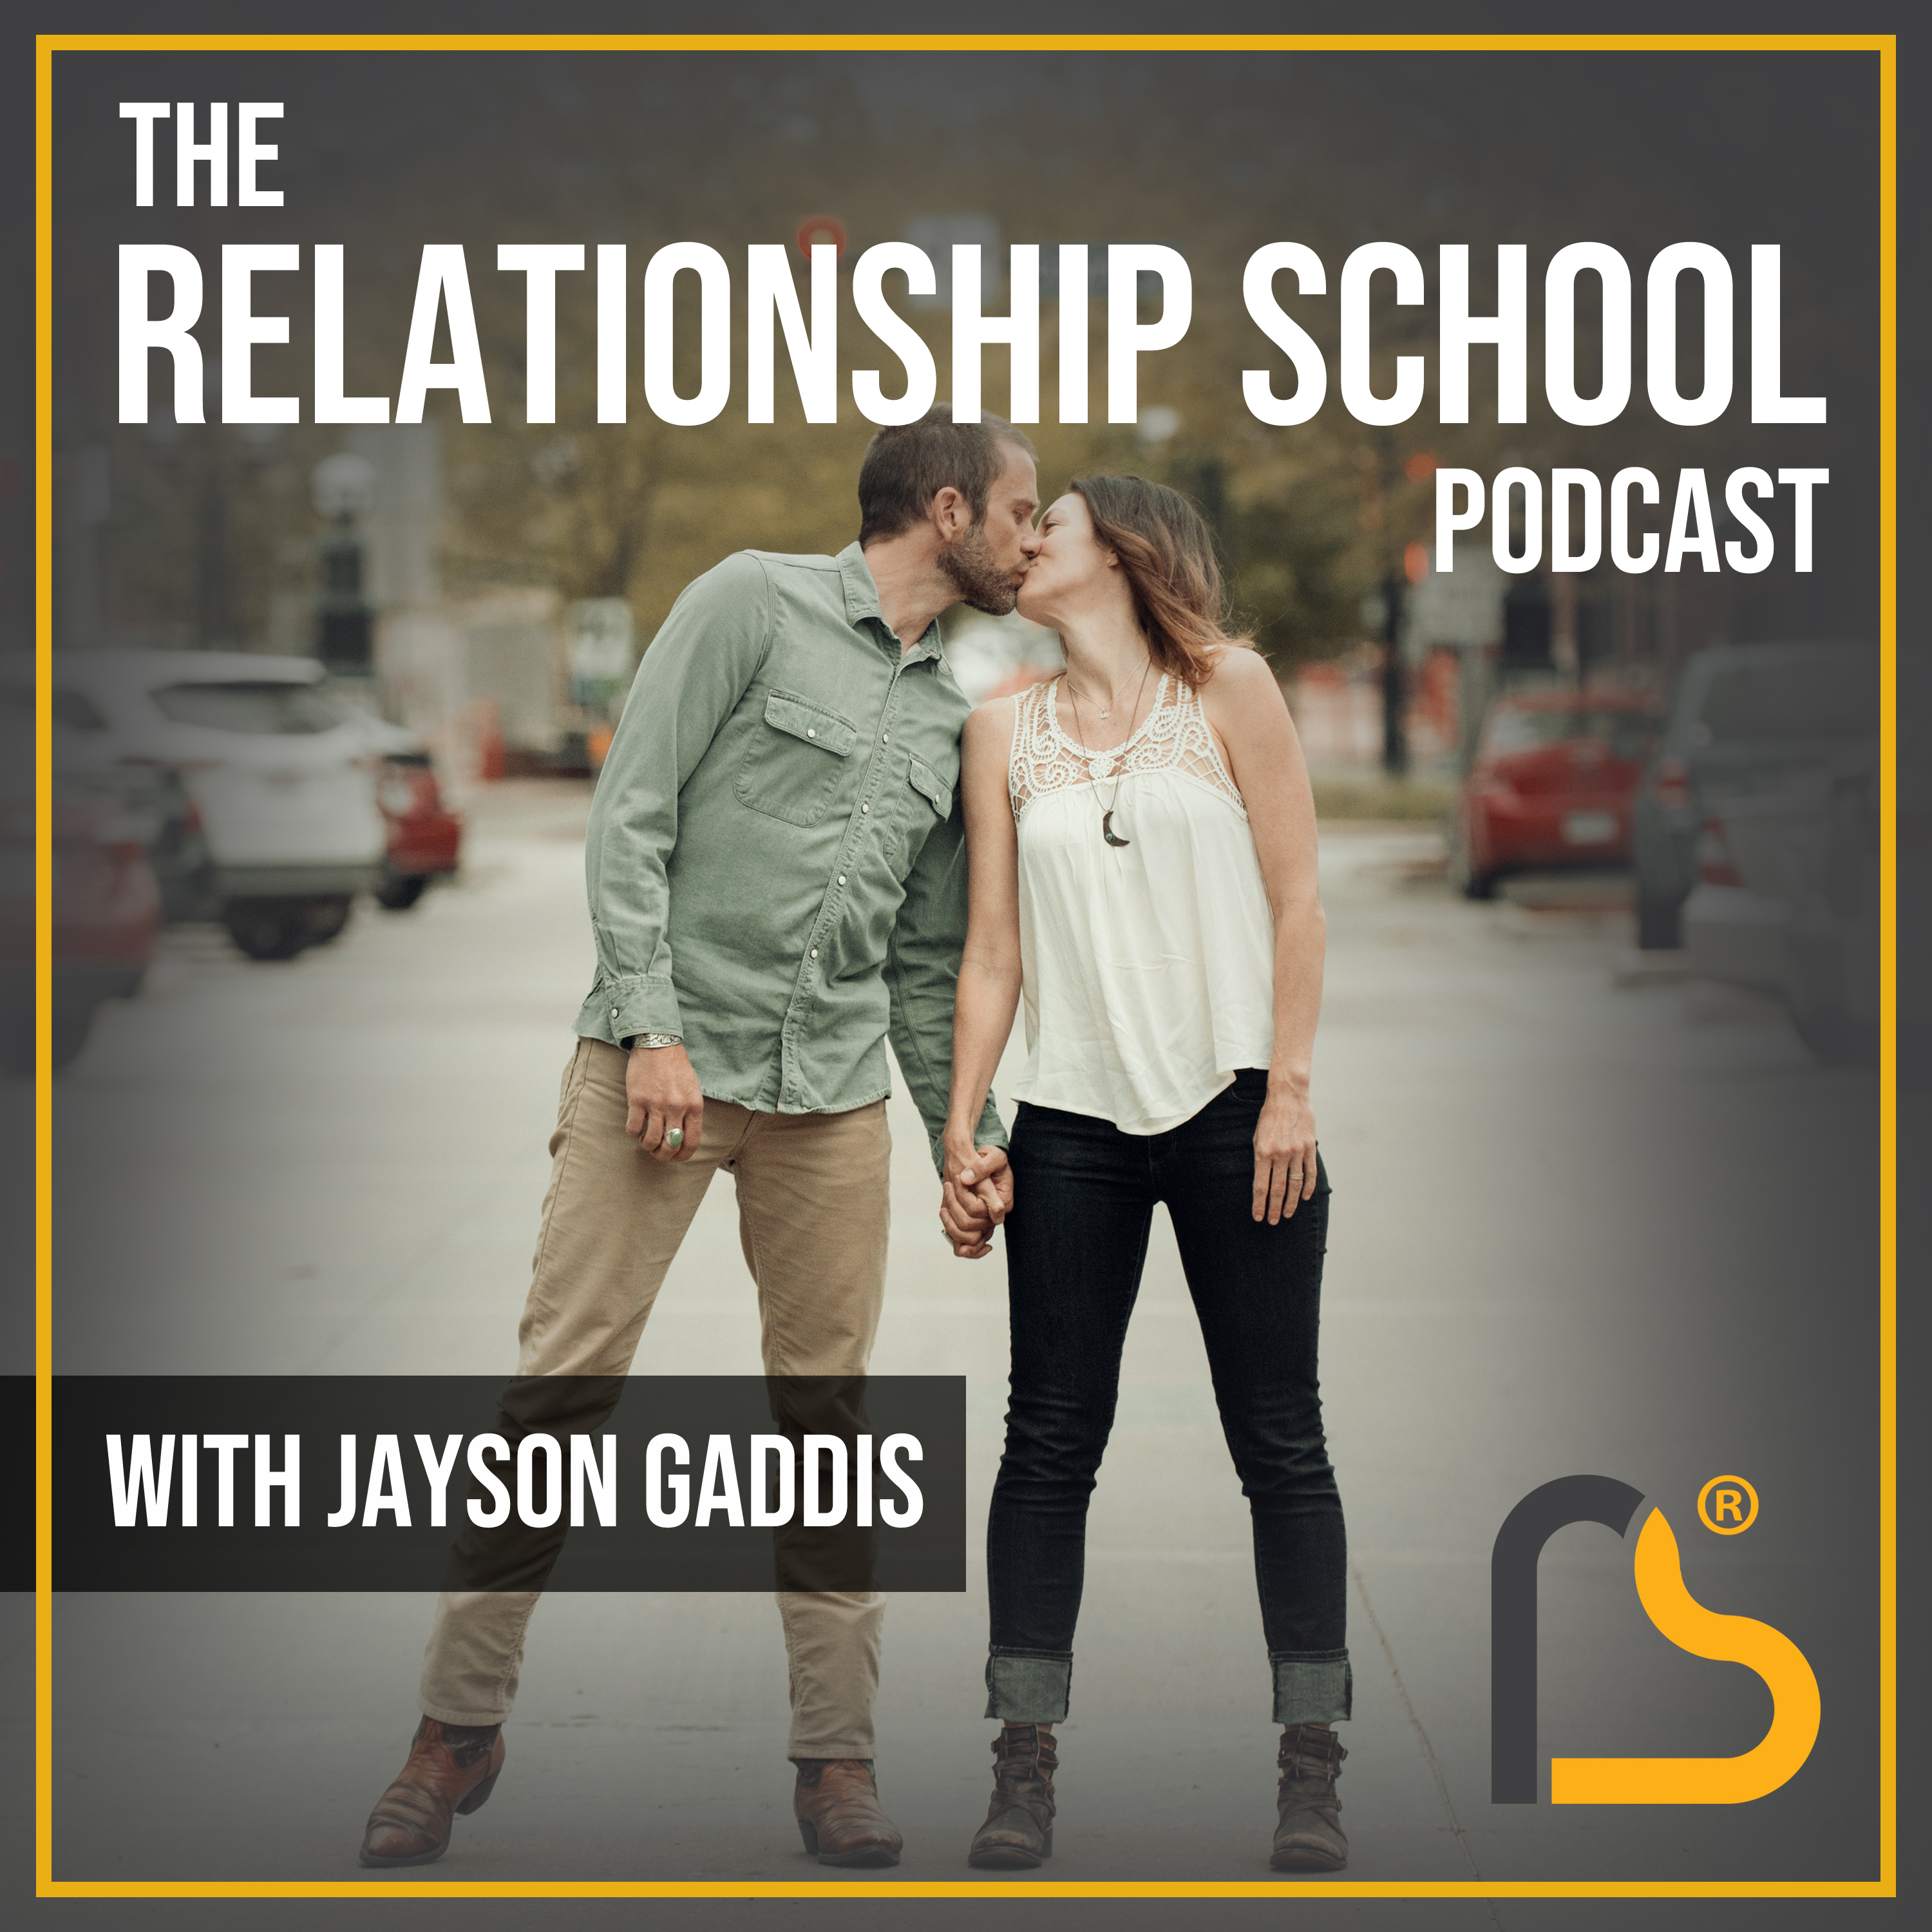 The Relationship School Podcast - Why trying to change your partner is impossible unless… - Relationship School Podcast EPISODE 250